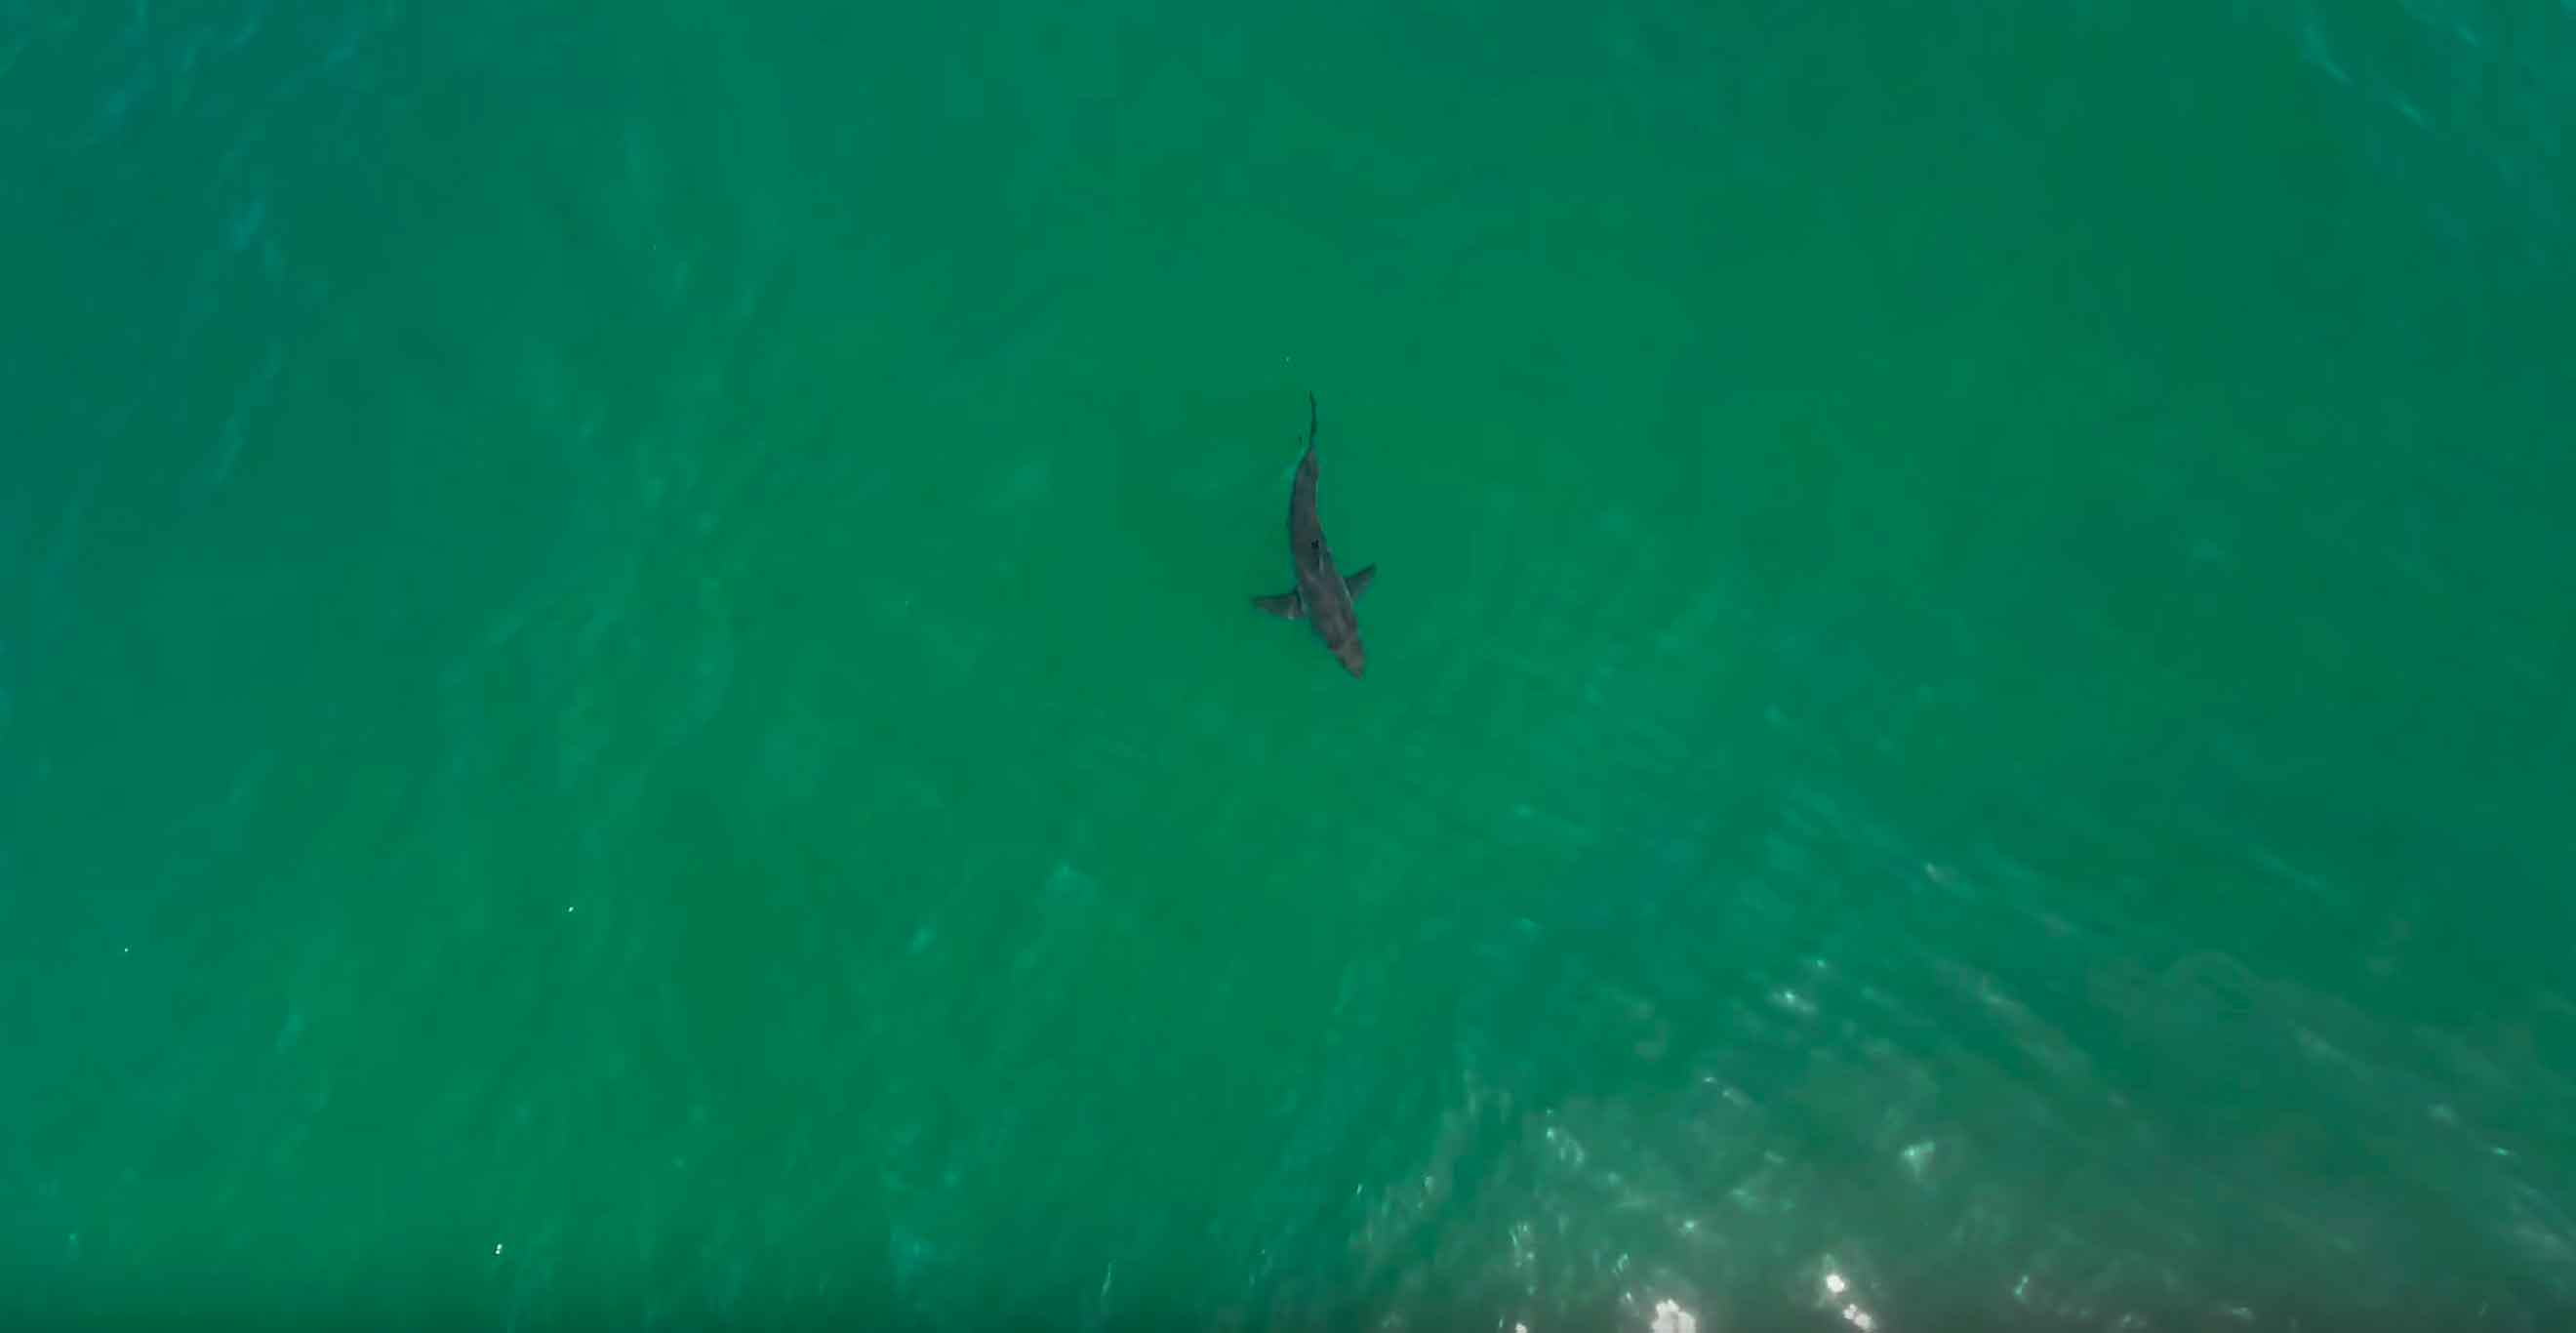 Images collected from drones between Santa Barbara and San Diego show sharks and surfers.